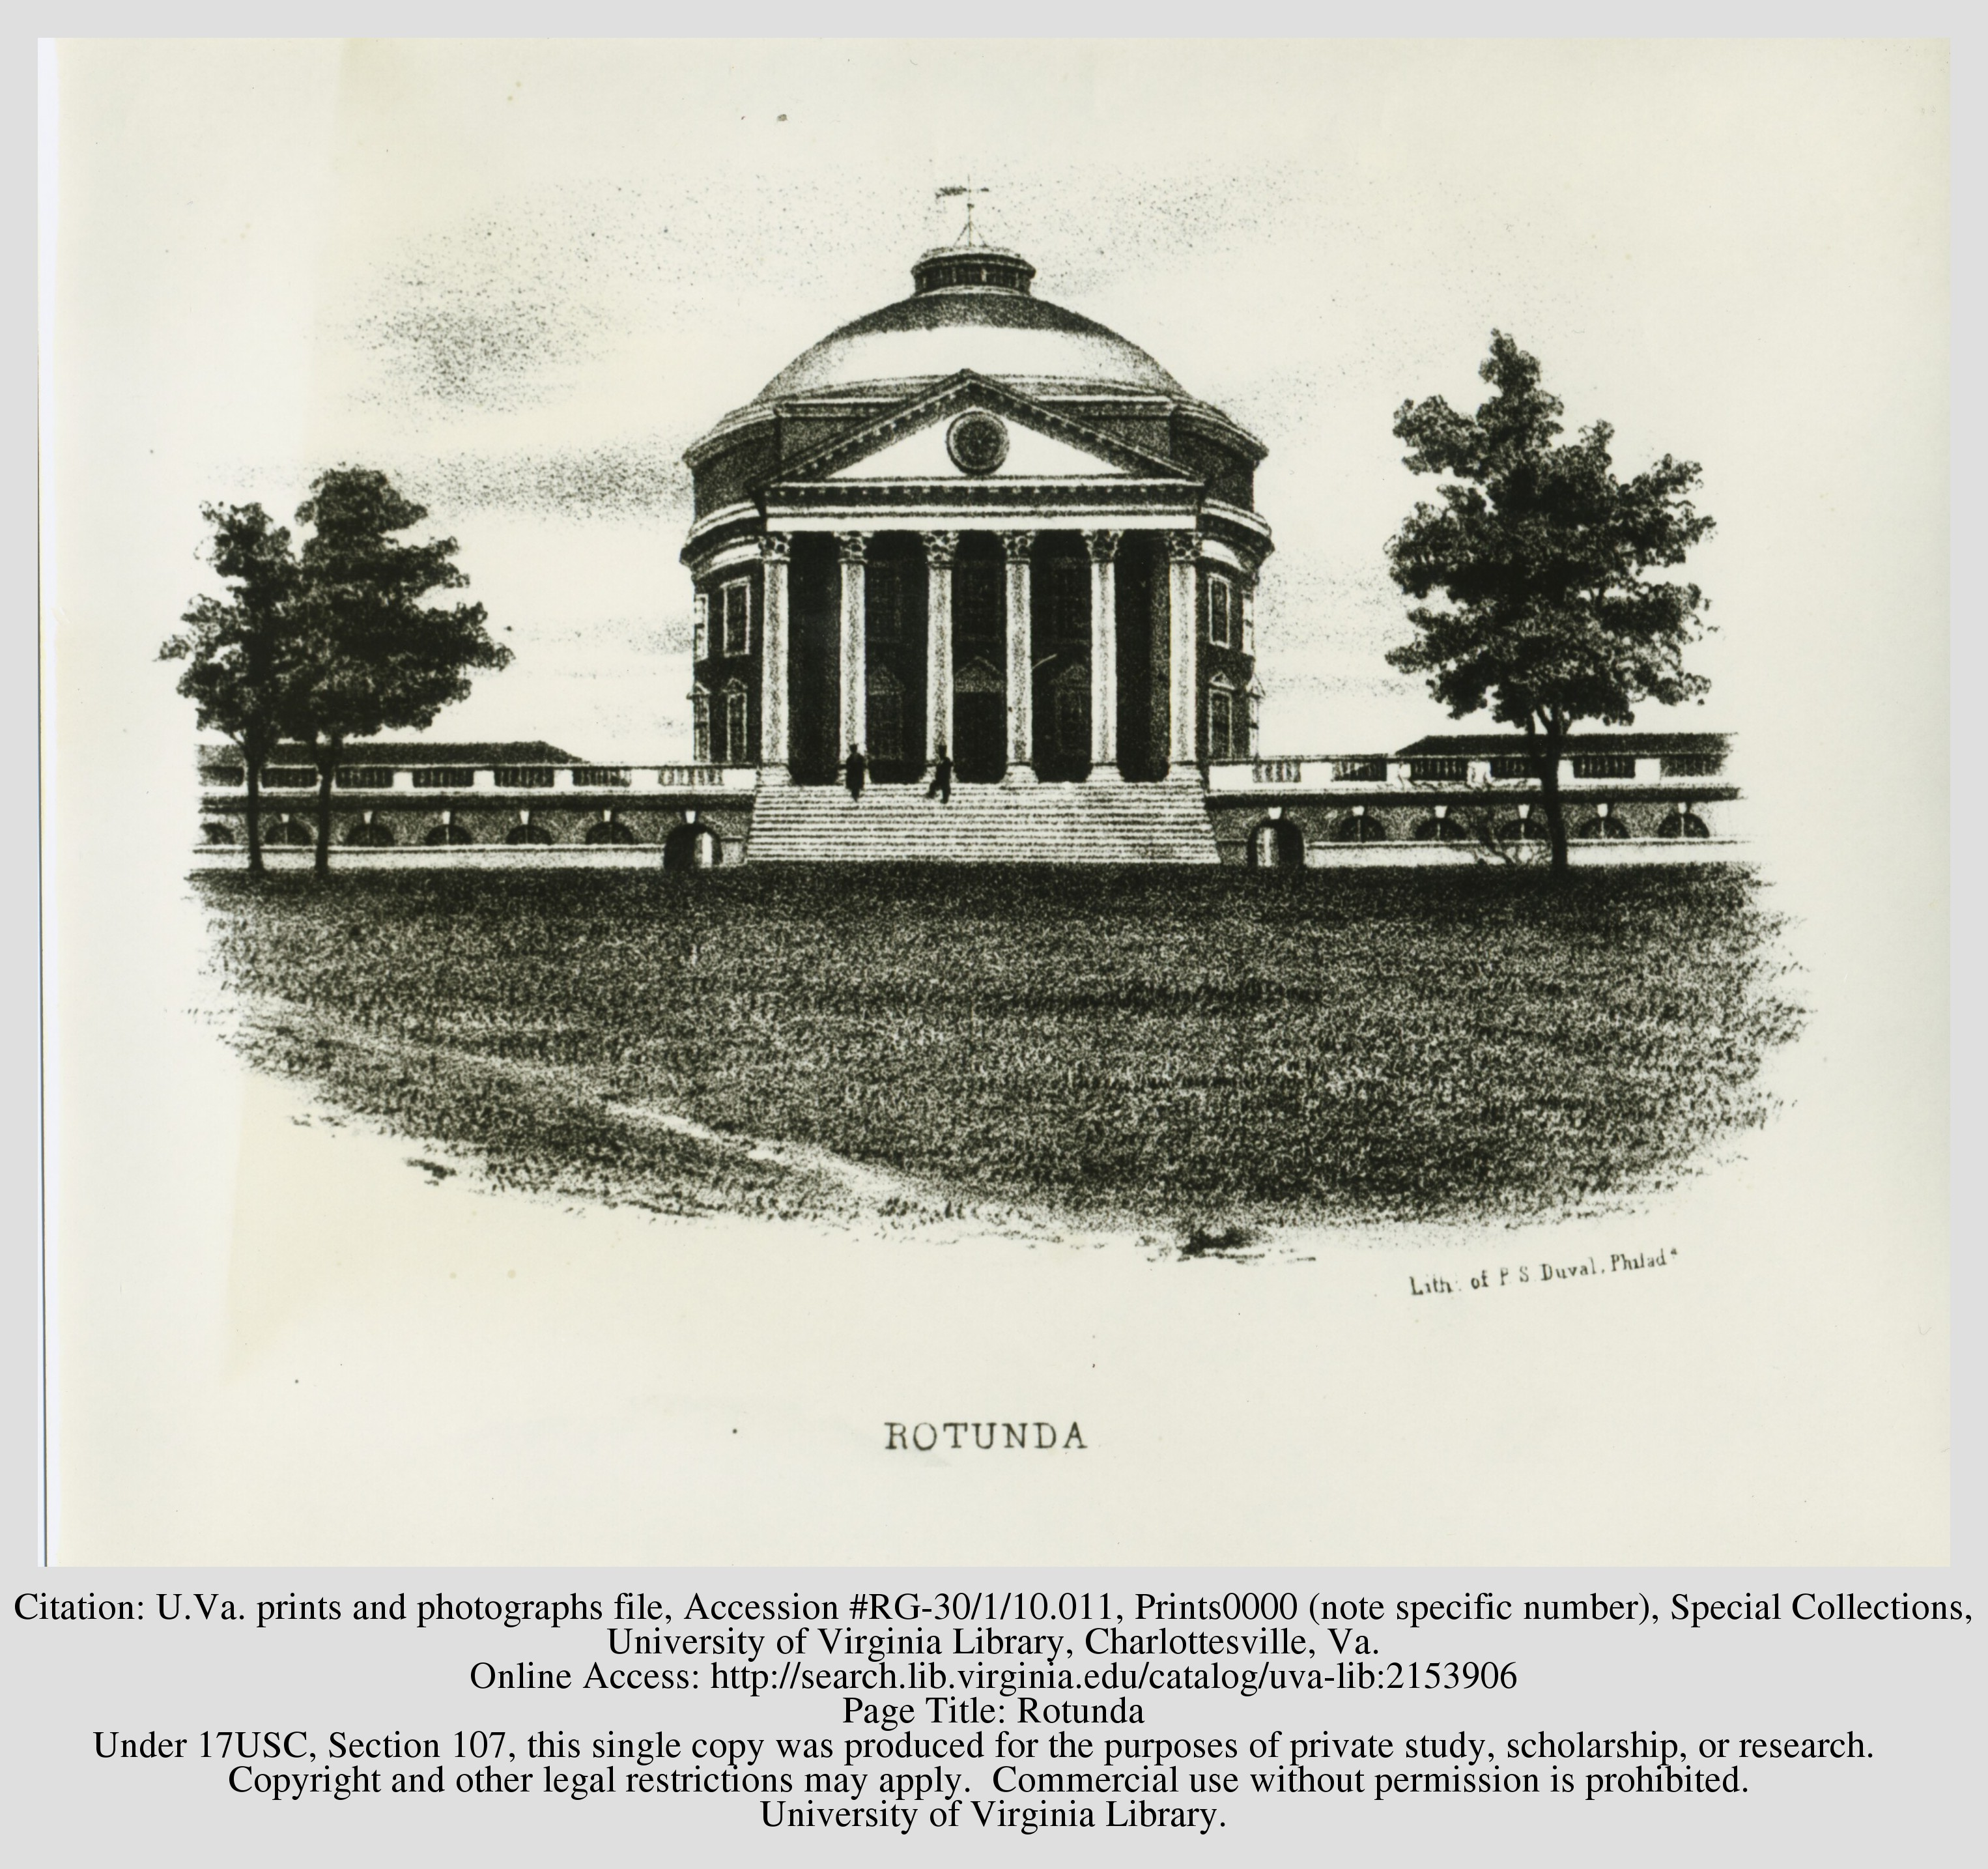 Drawing of the Rotunda, 1846. By Peter S. Duval. Courtesy of the Library of the University of Virginia.